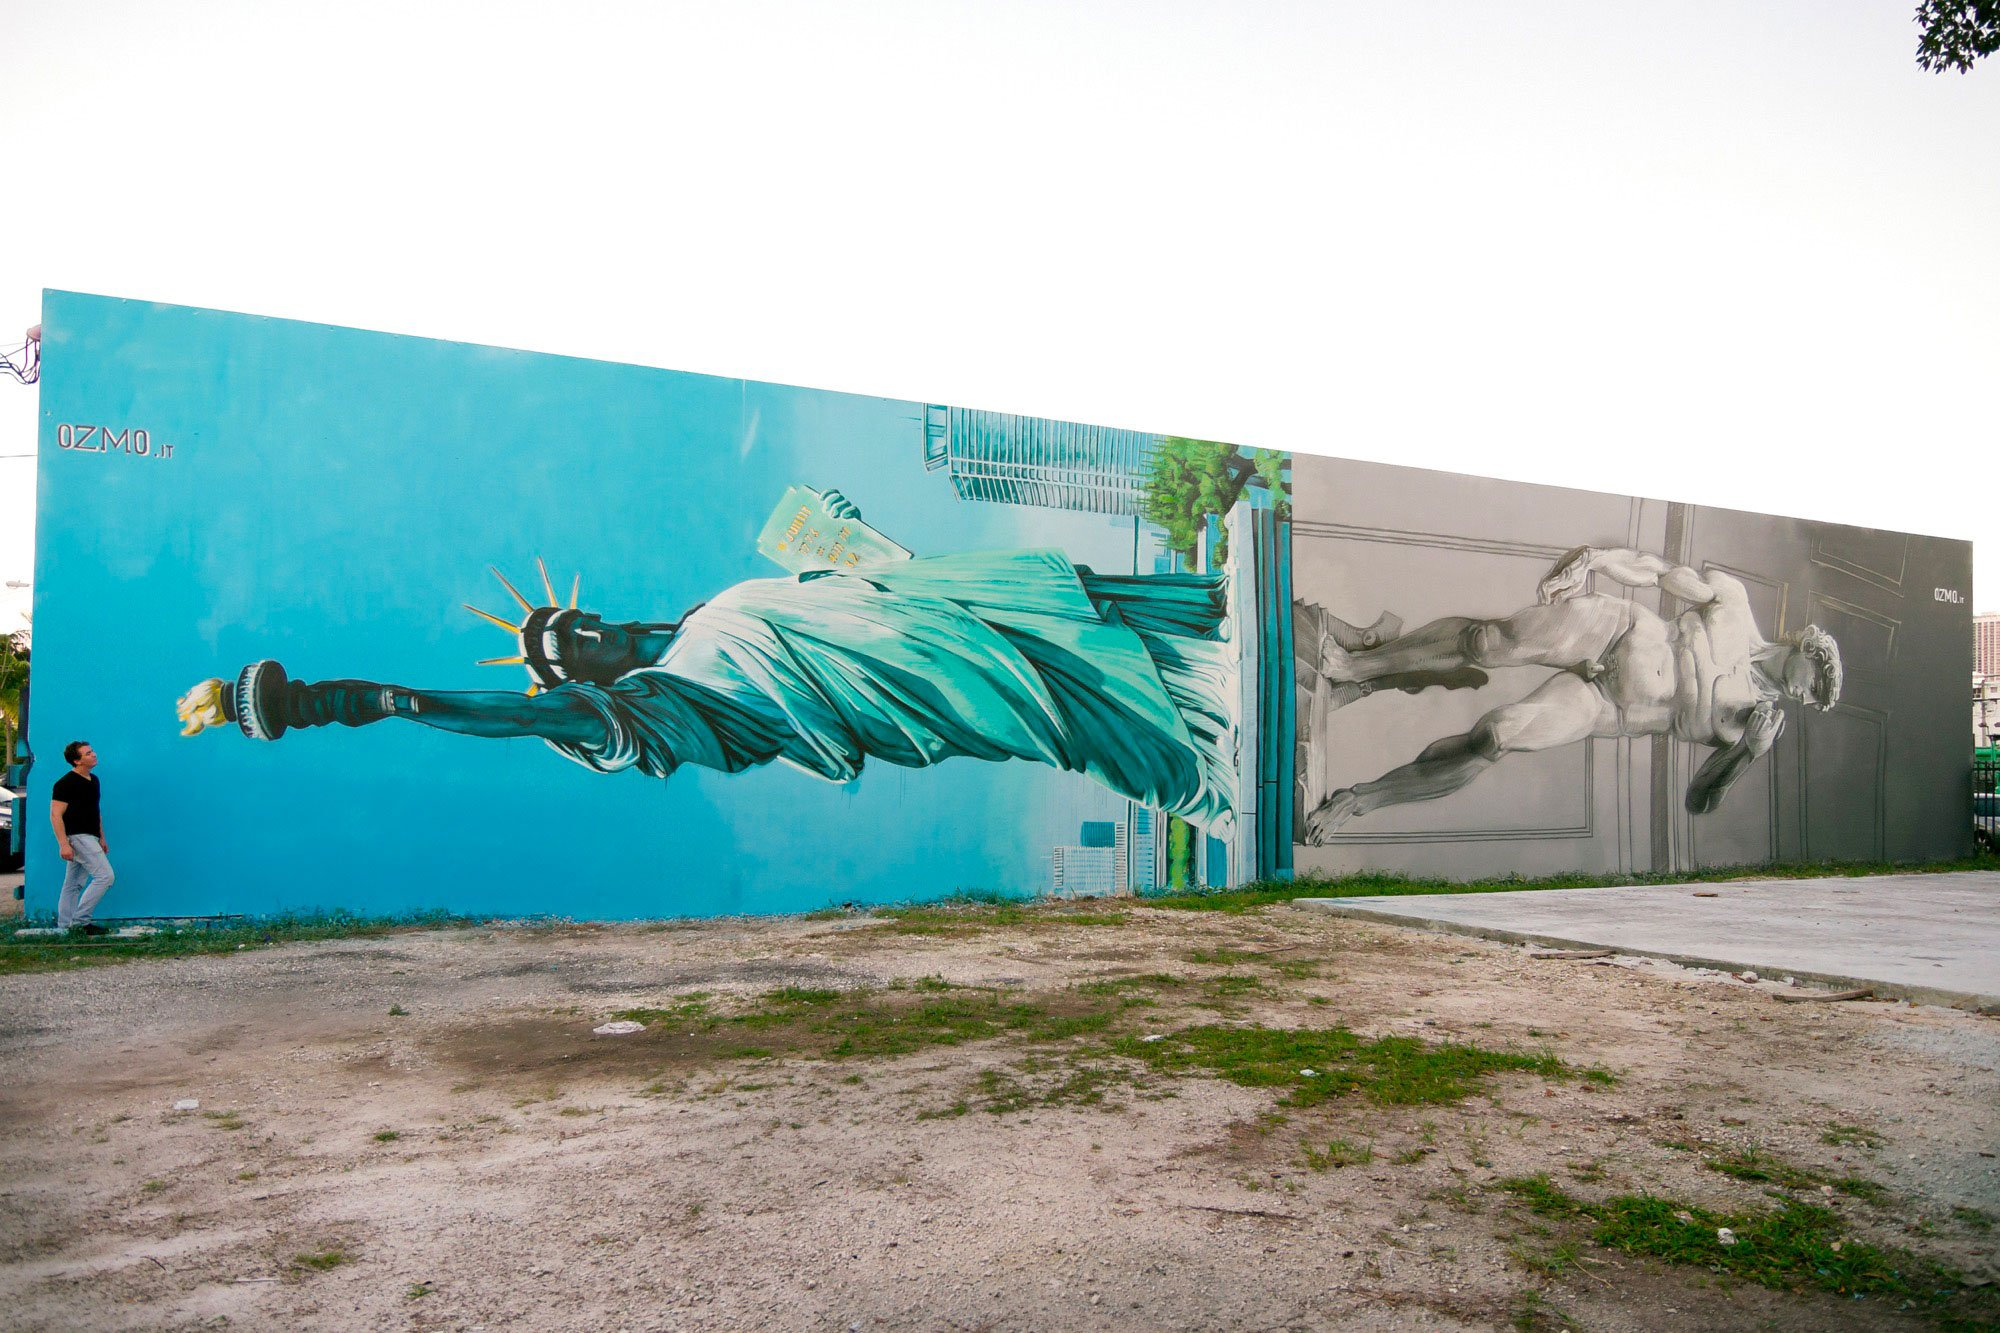 New Mural in Miami, Lady Liberty and David sharing the same pedestal